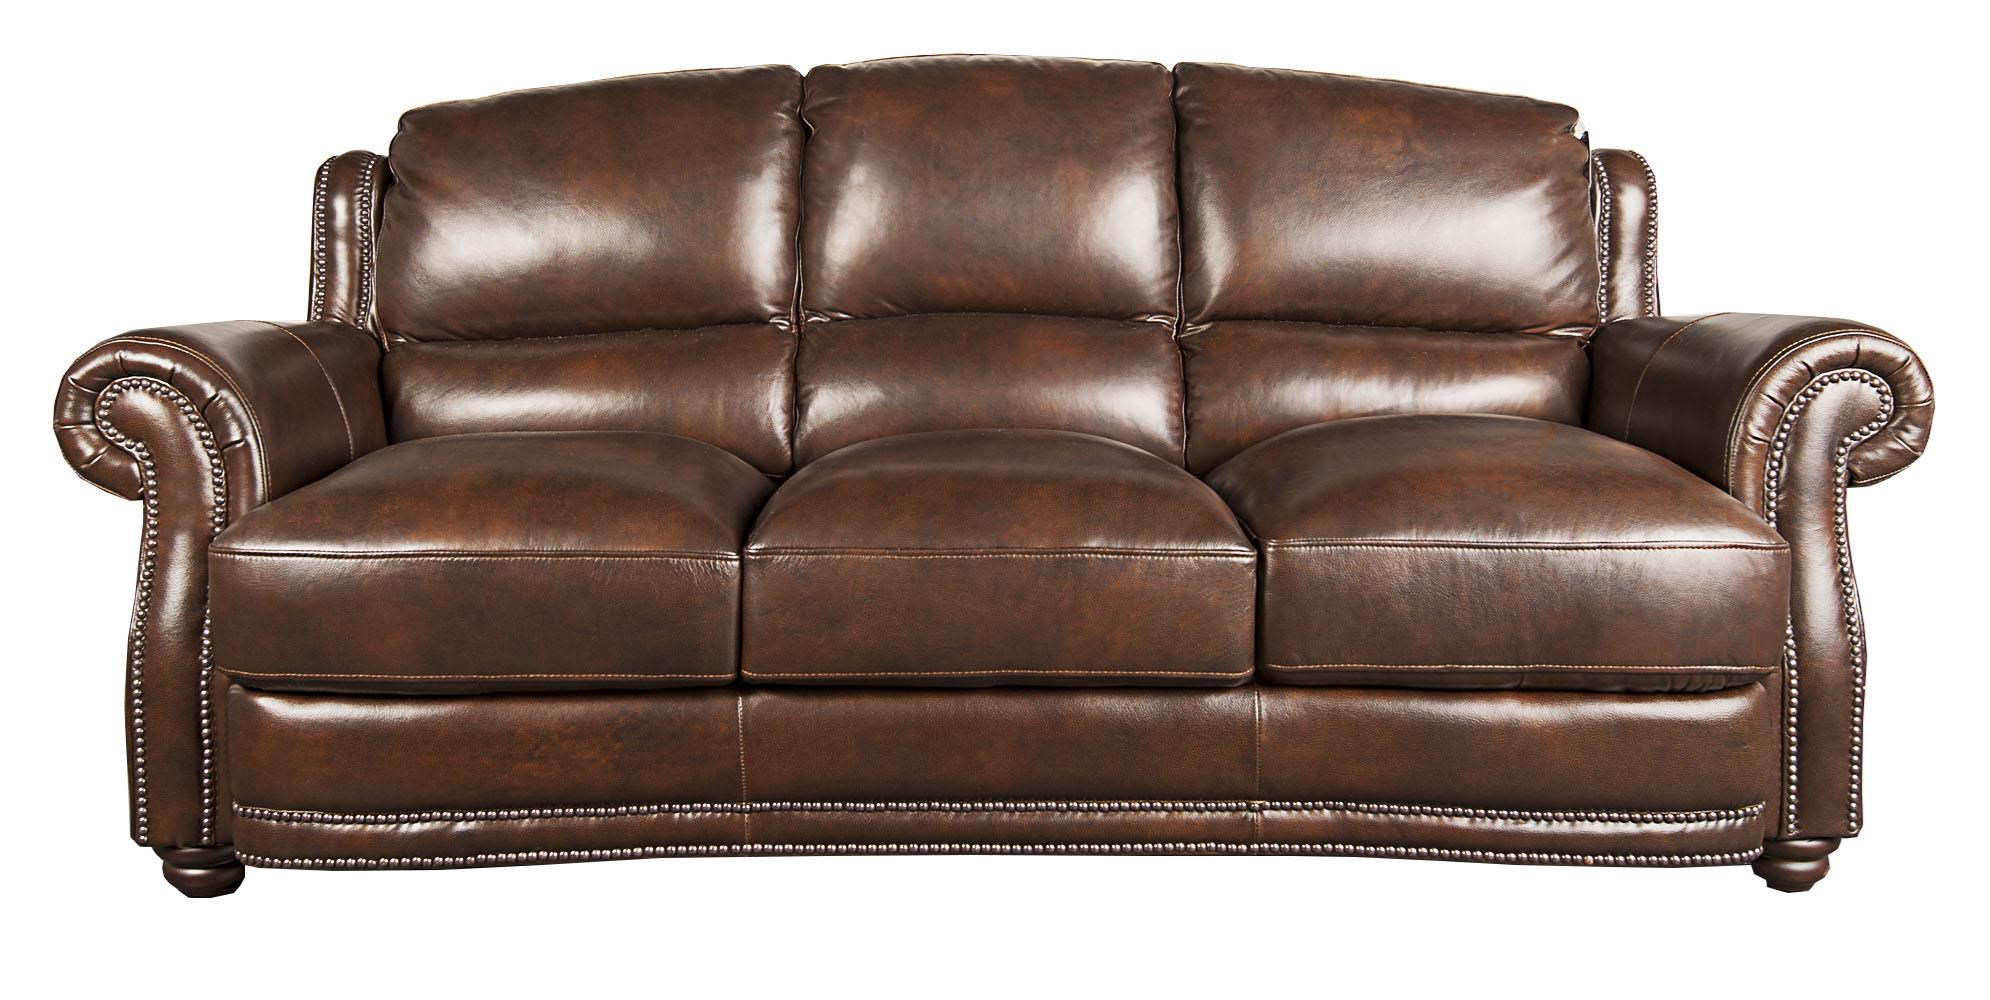 Morris Home Furnishings Harrison Harrison 100% Leather Sofa - Item Number: 103105276